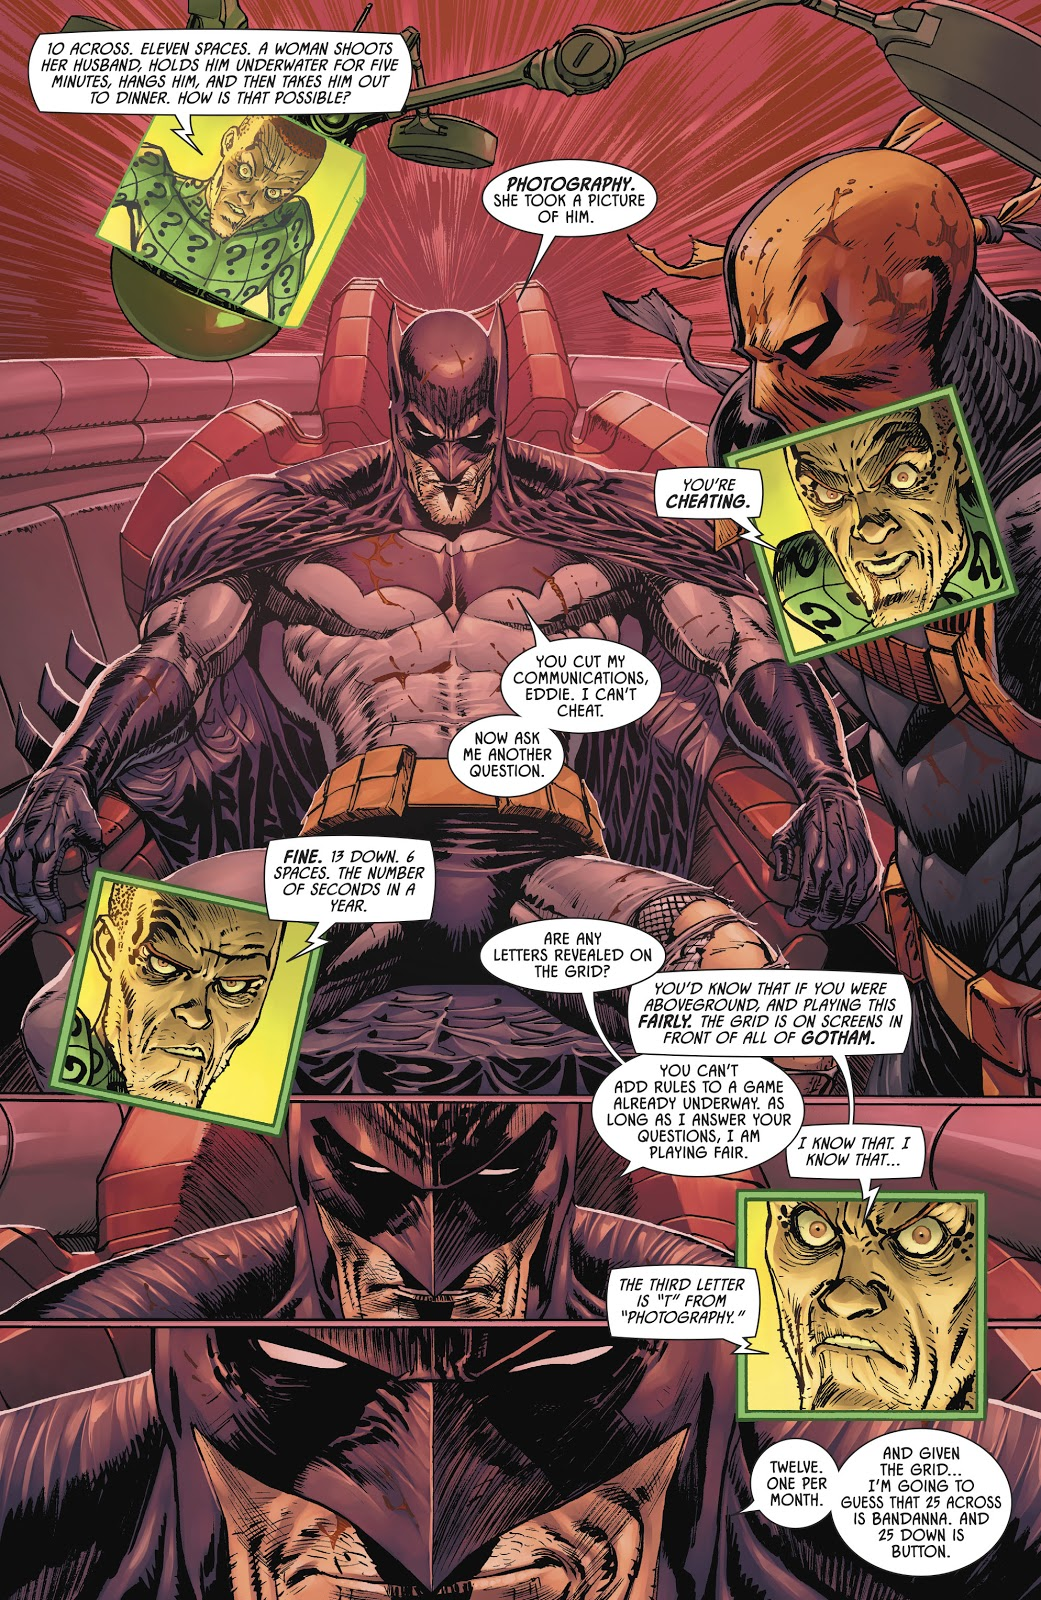 Batman Beats The Riddler In Crossword Puzzles